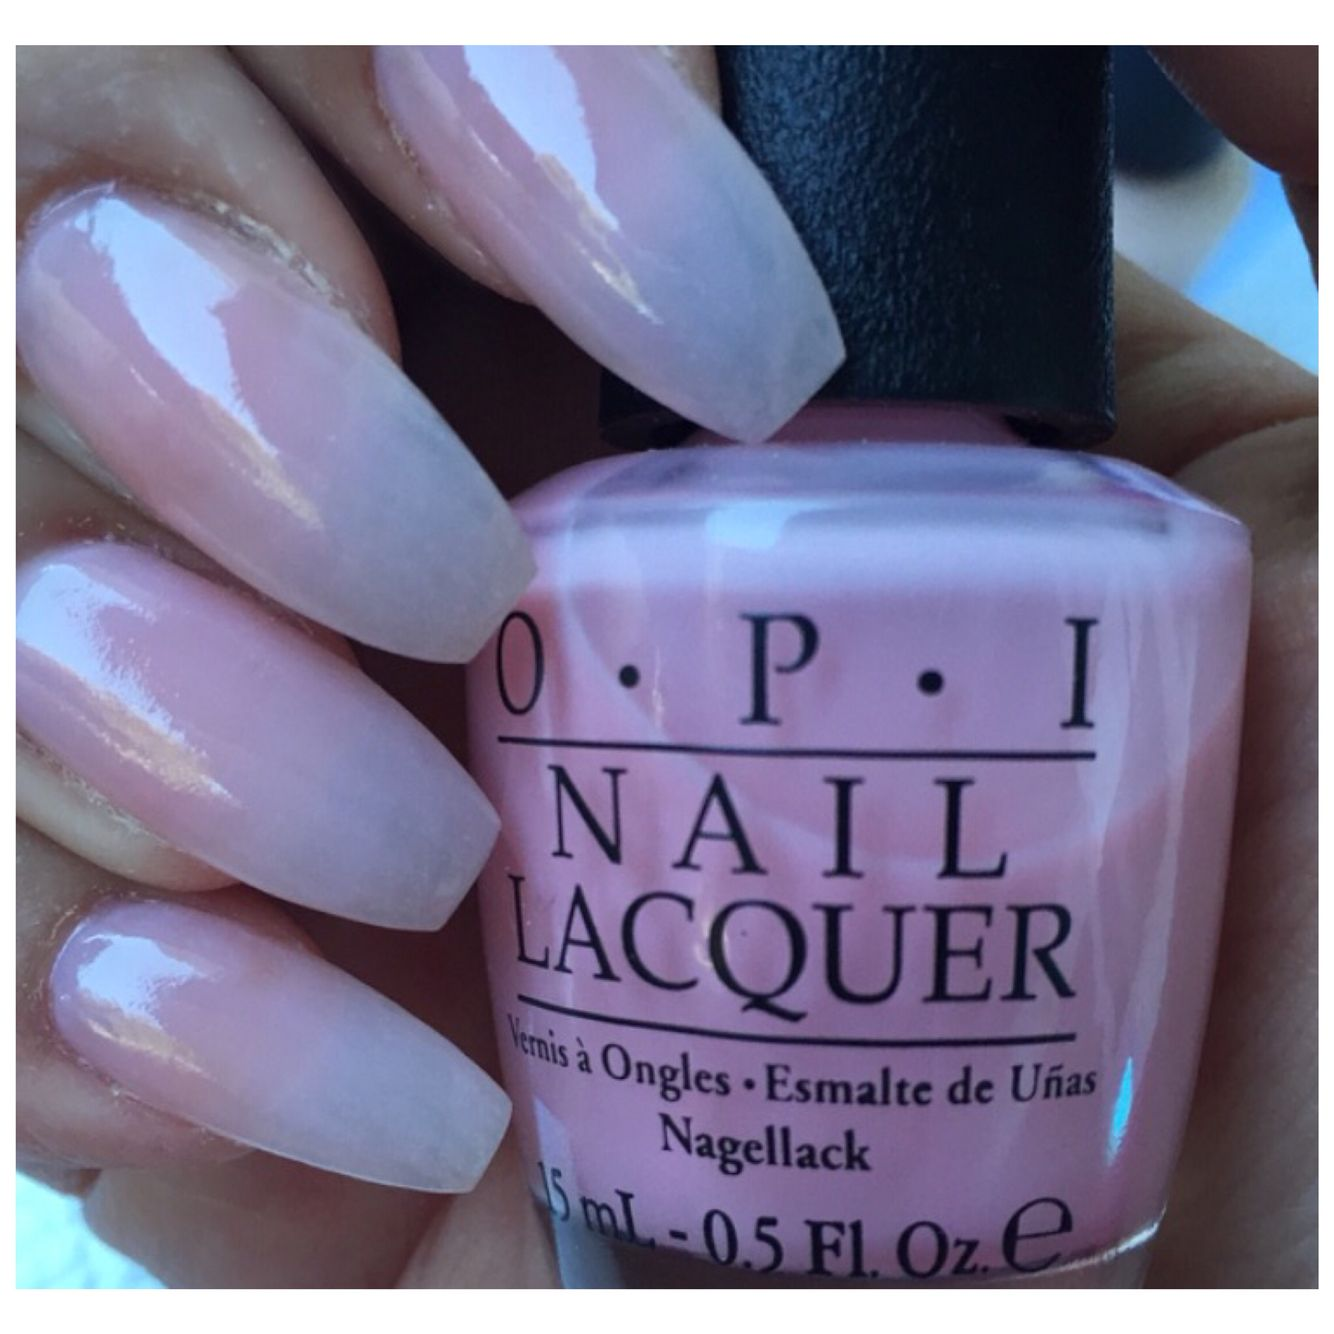 2 coats of OPI It\u0027s A Girl over regular (clear) acrylic